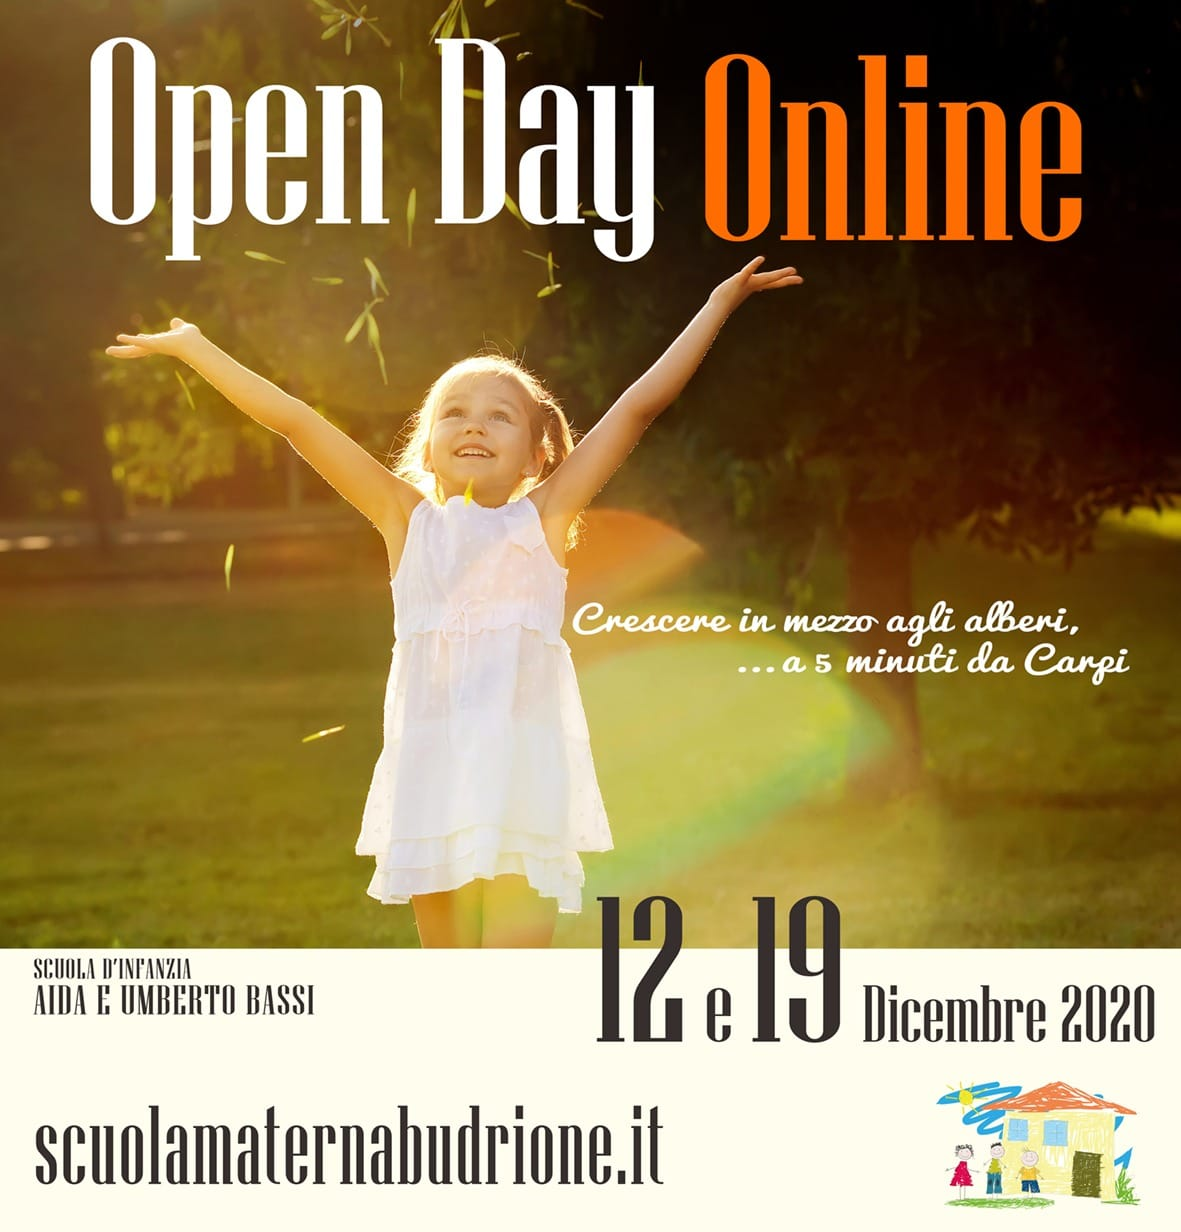 open-day-online-12-19-122020-scuolamaternabudrione